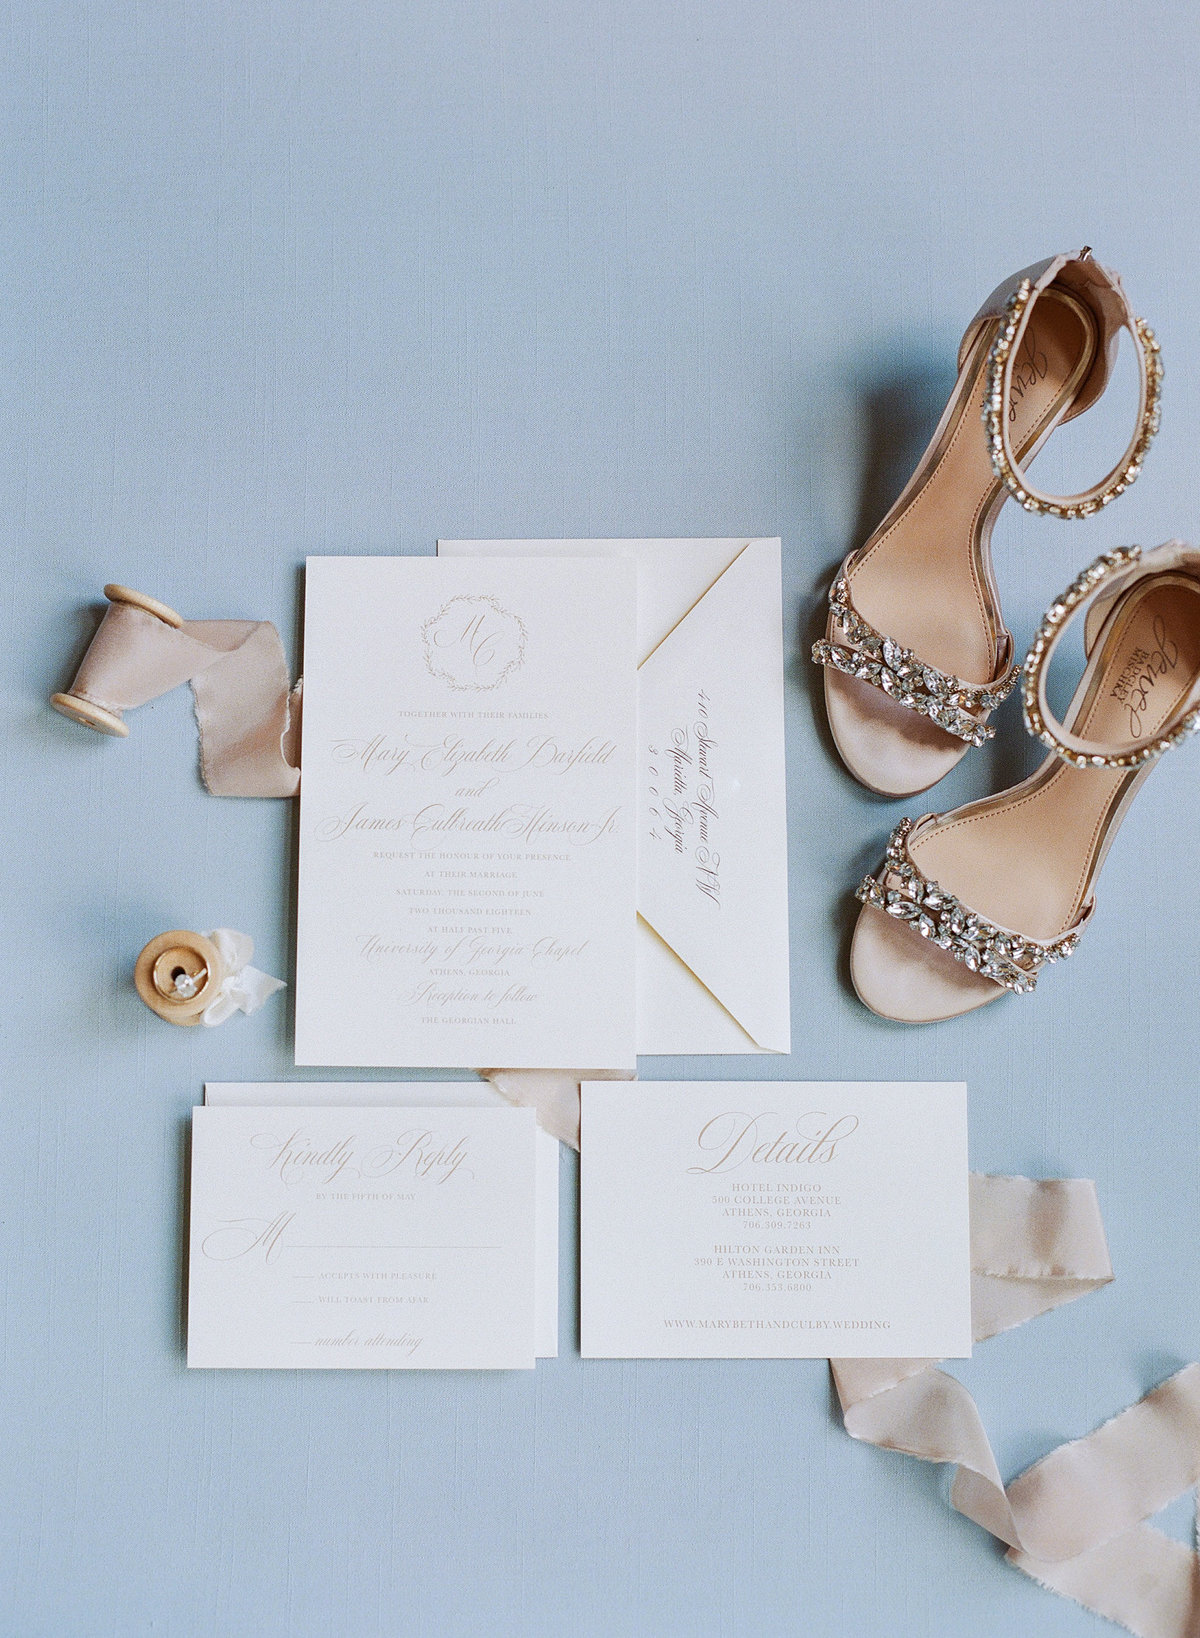 Invitation Suite with Sparkly Shoes